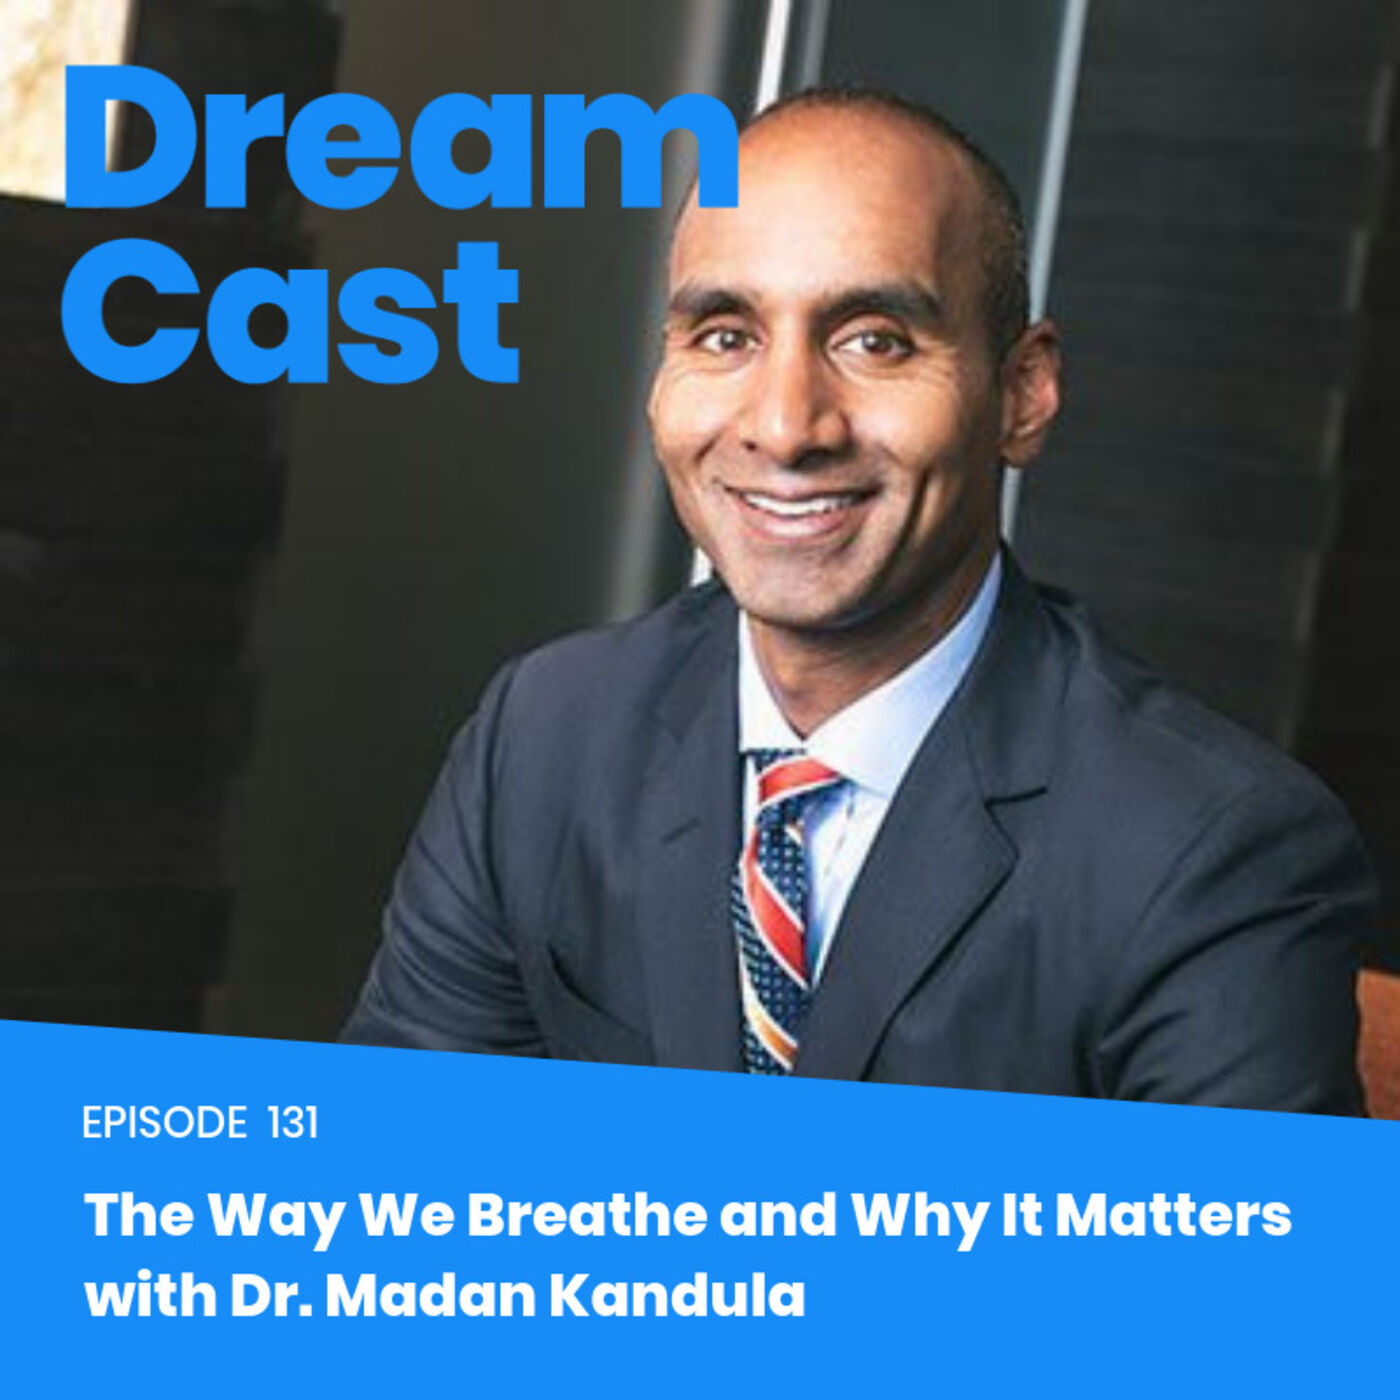 Episode 131 – The Way we Breathe and Why It Matters with Dr. Kandula